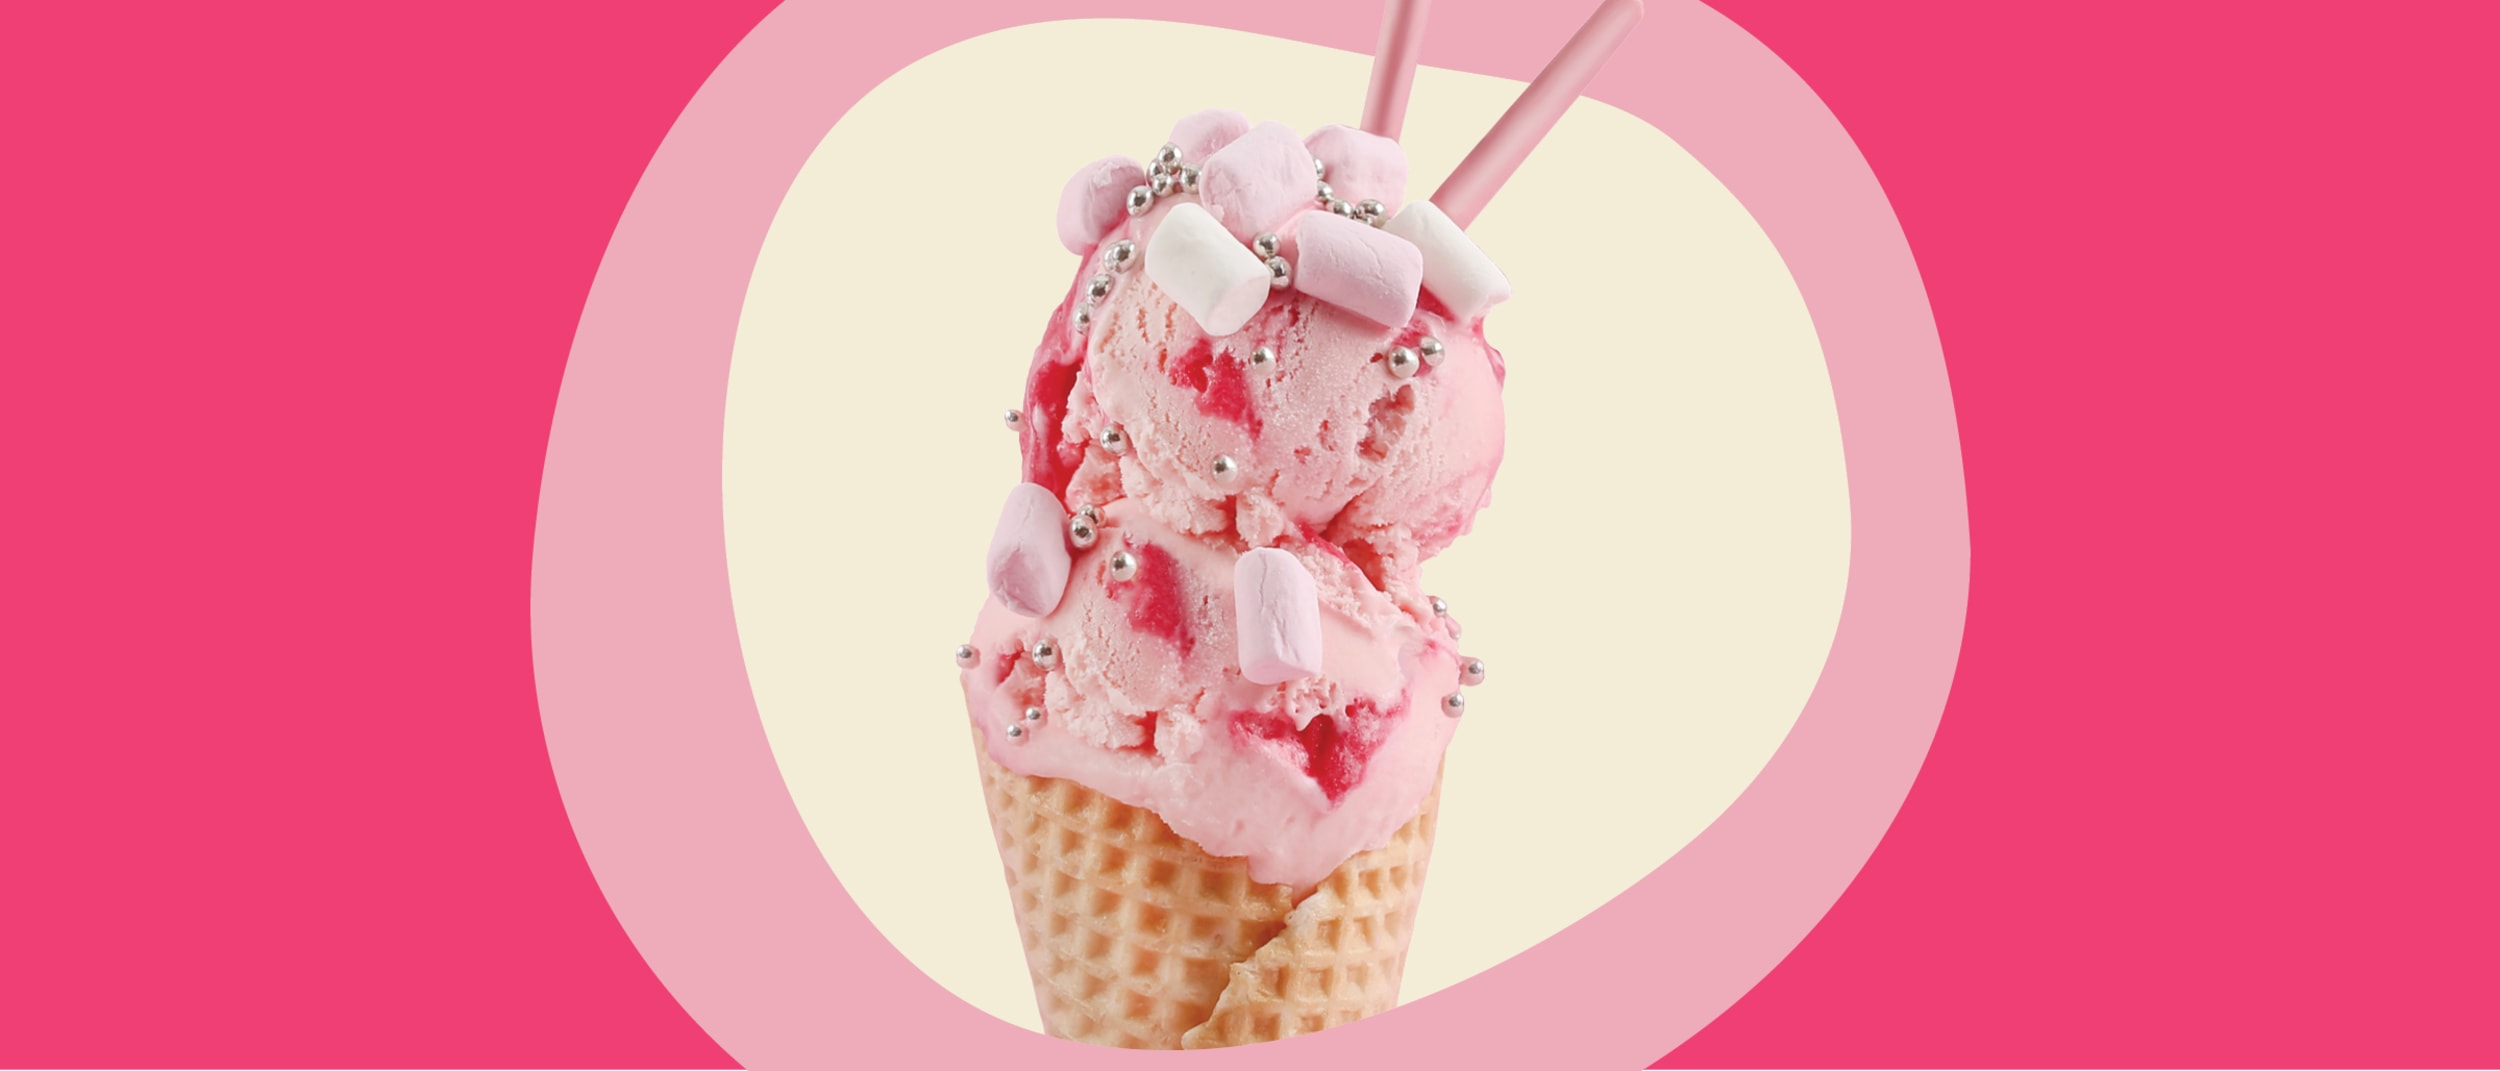 Introducing New Zealand Natural's new Pink Flamingo ice-cream